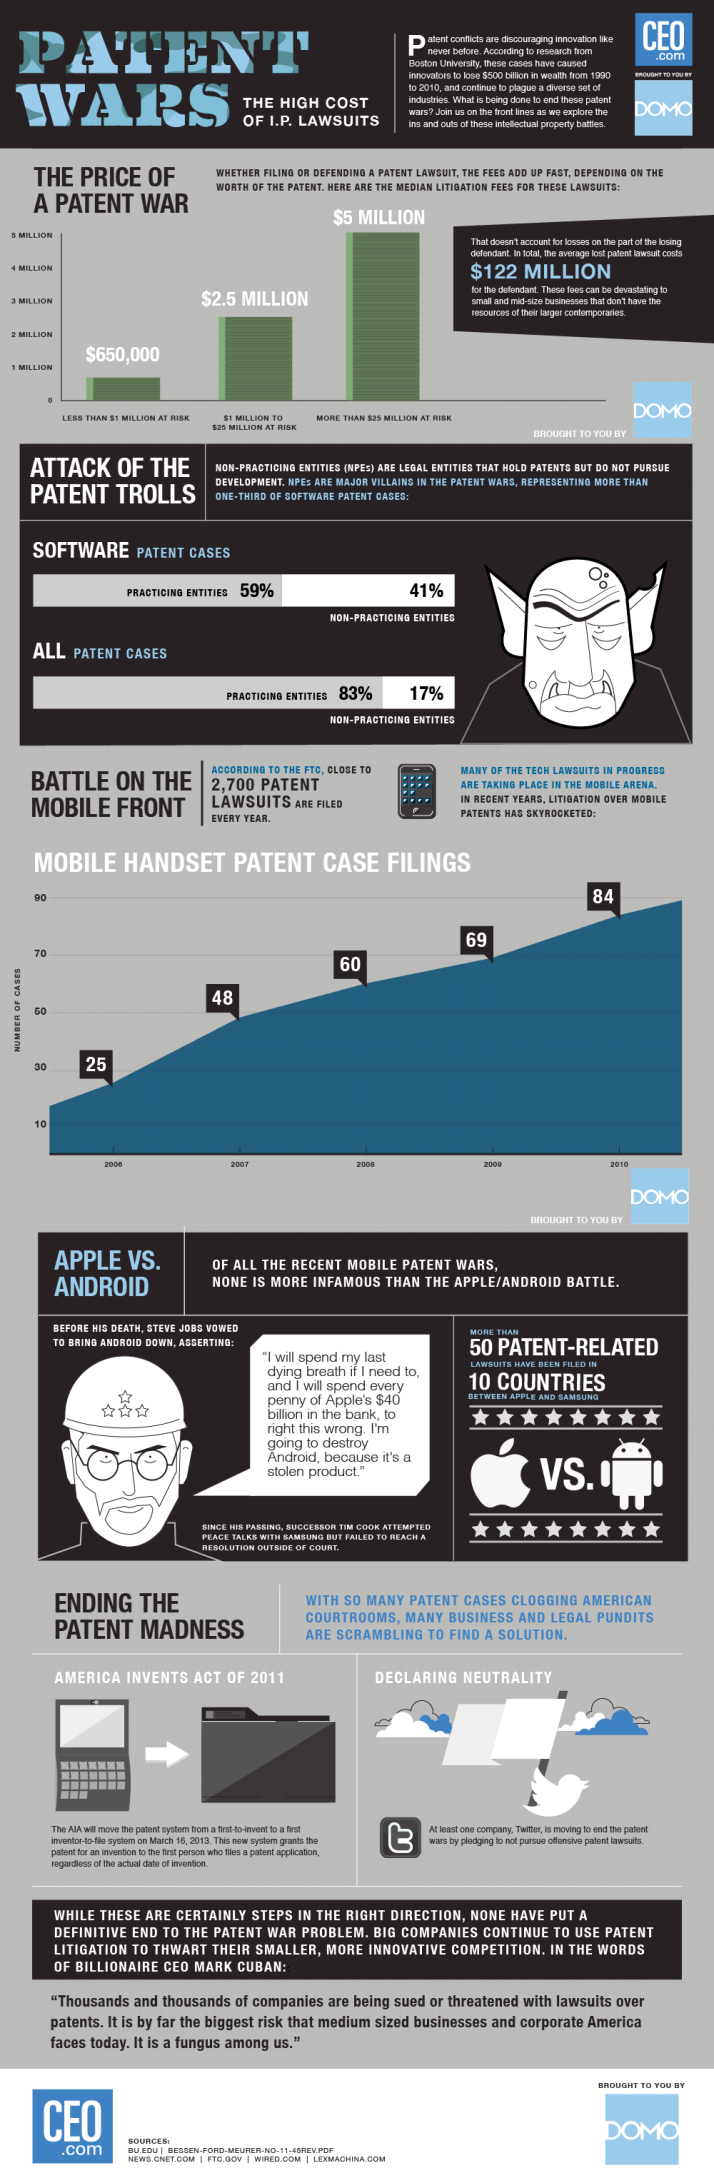 [INFOGRAPHIC] The War of patents | #apple #samsung #android